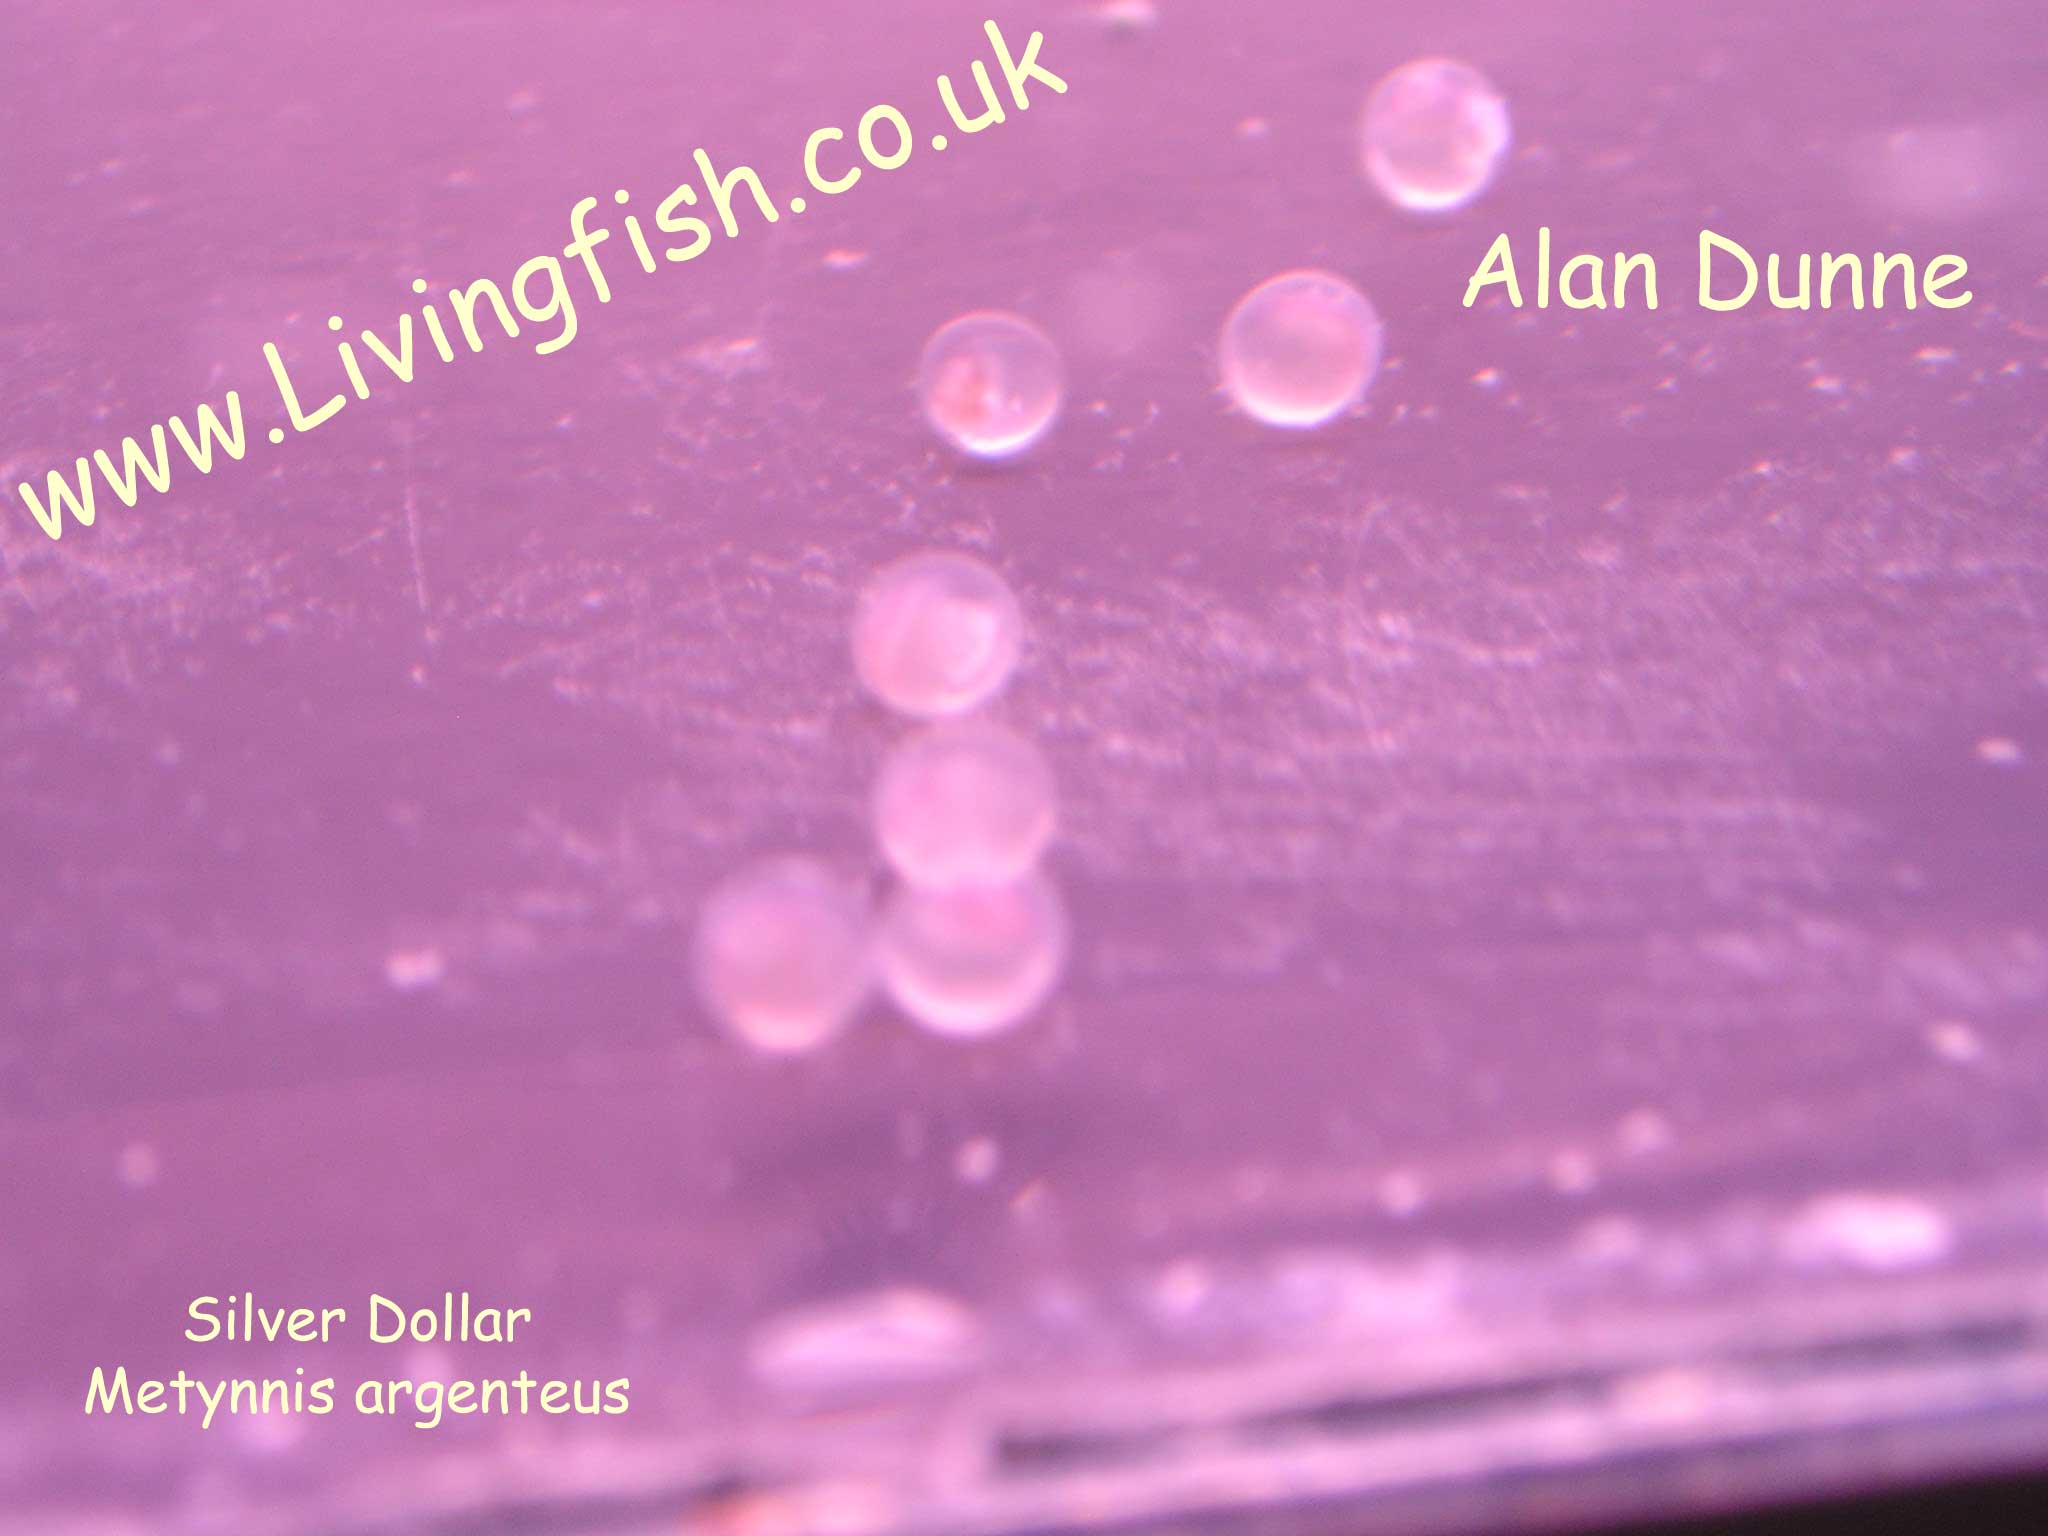 Silver dollar fish eggs - photo#1